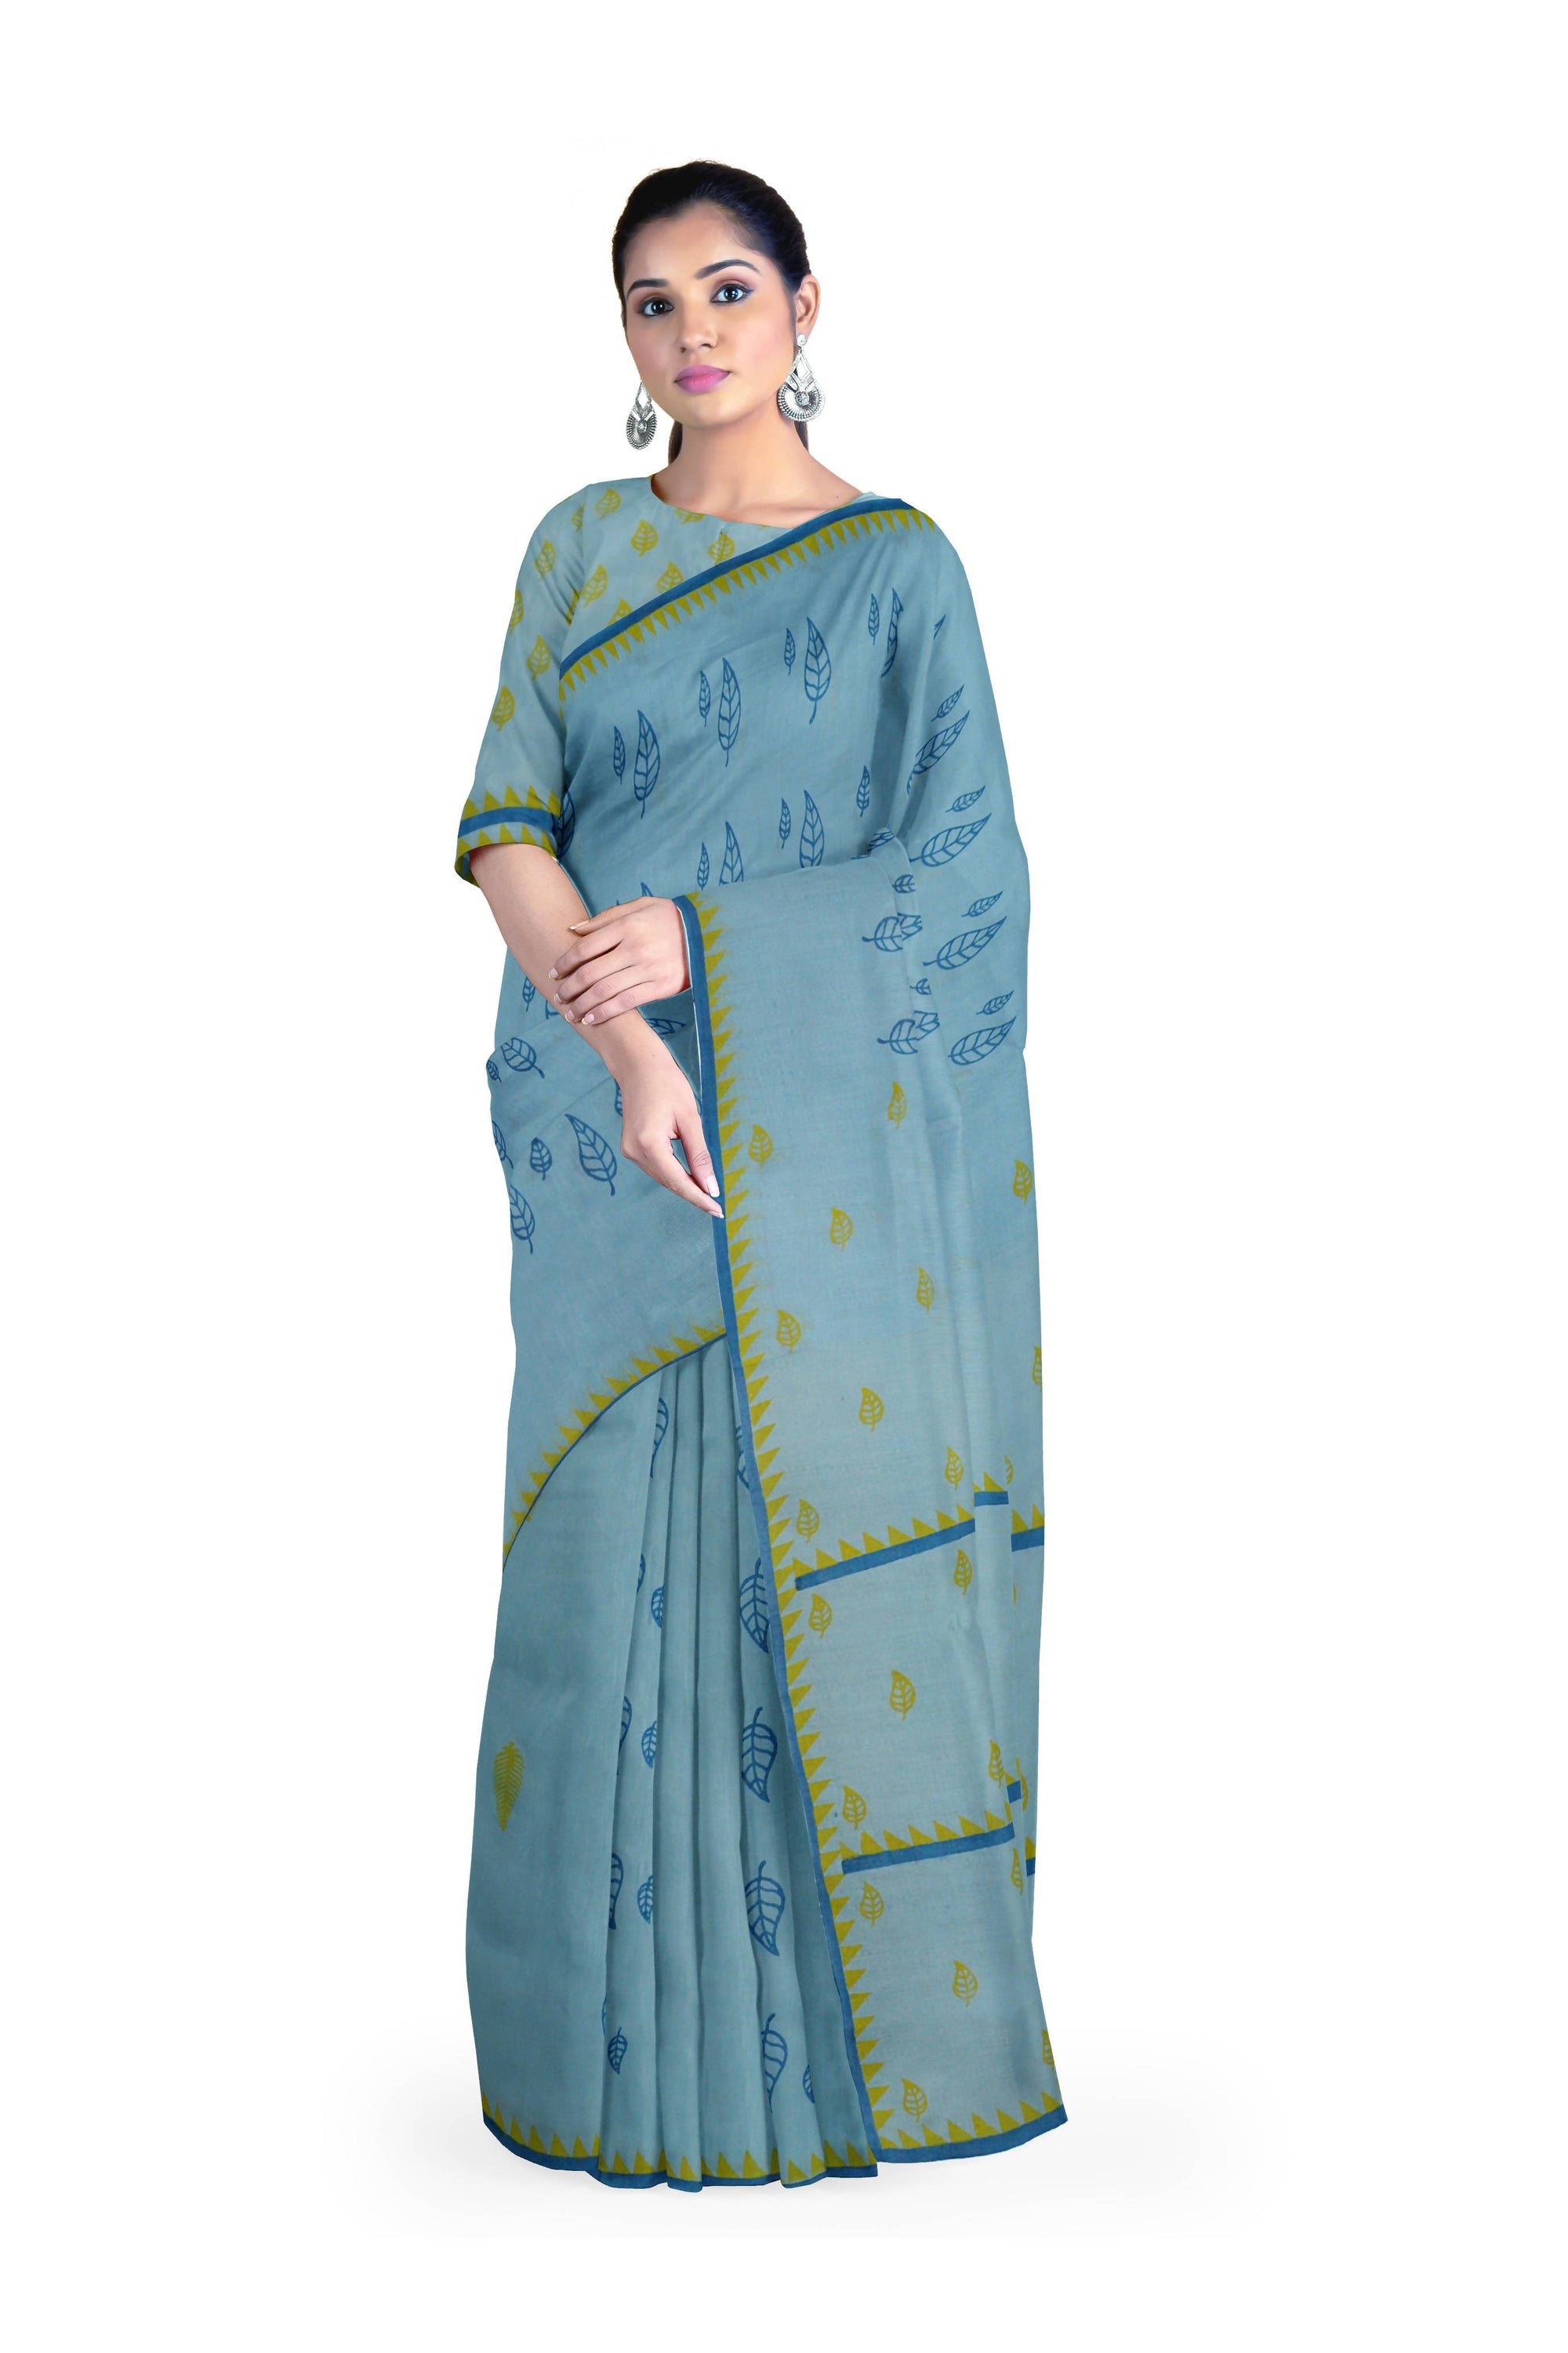 Handloom Cyan Malmal Khadi Saree with Leaf Block Prints and Temple Border